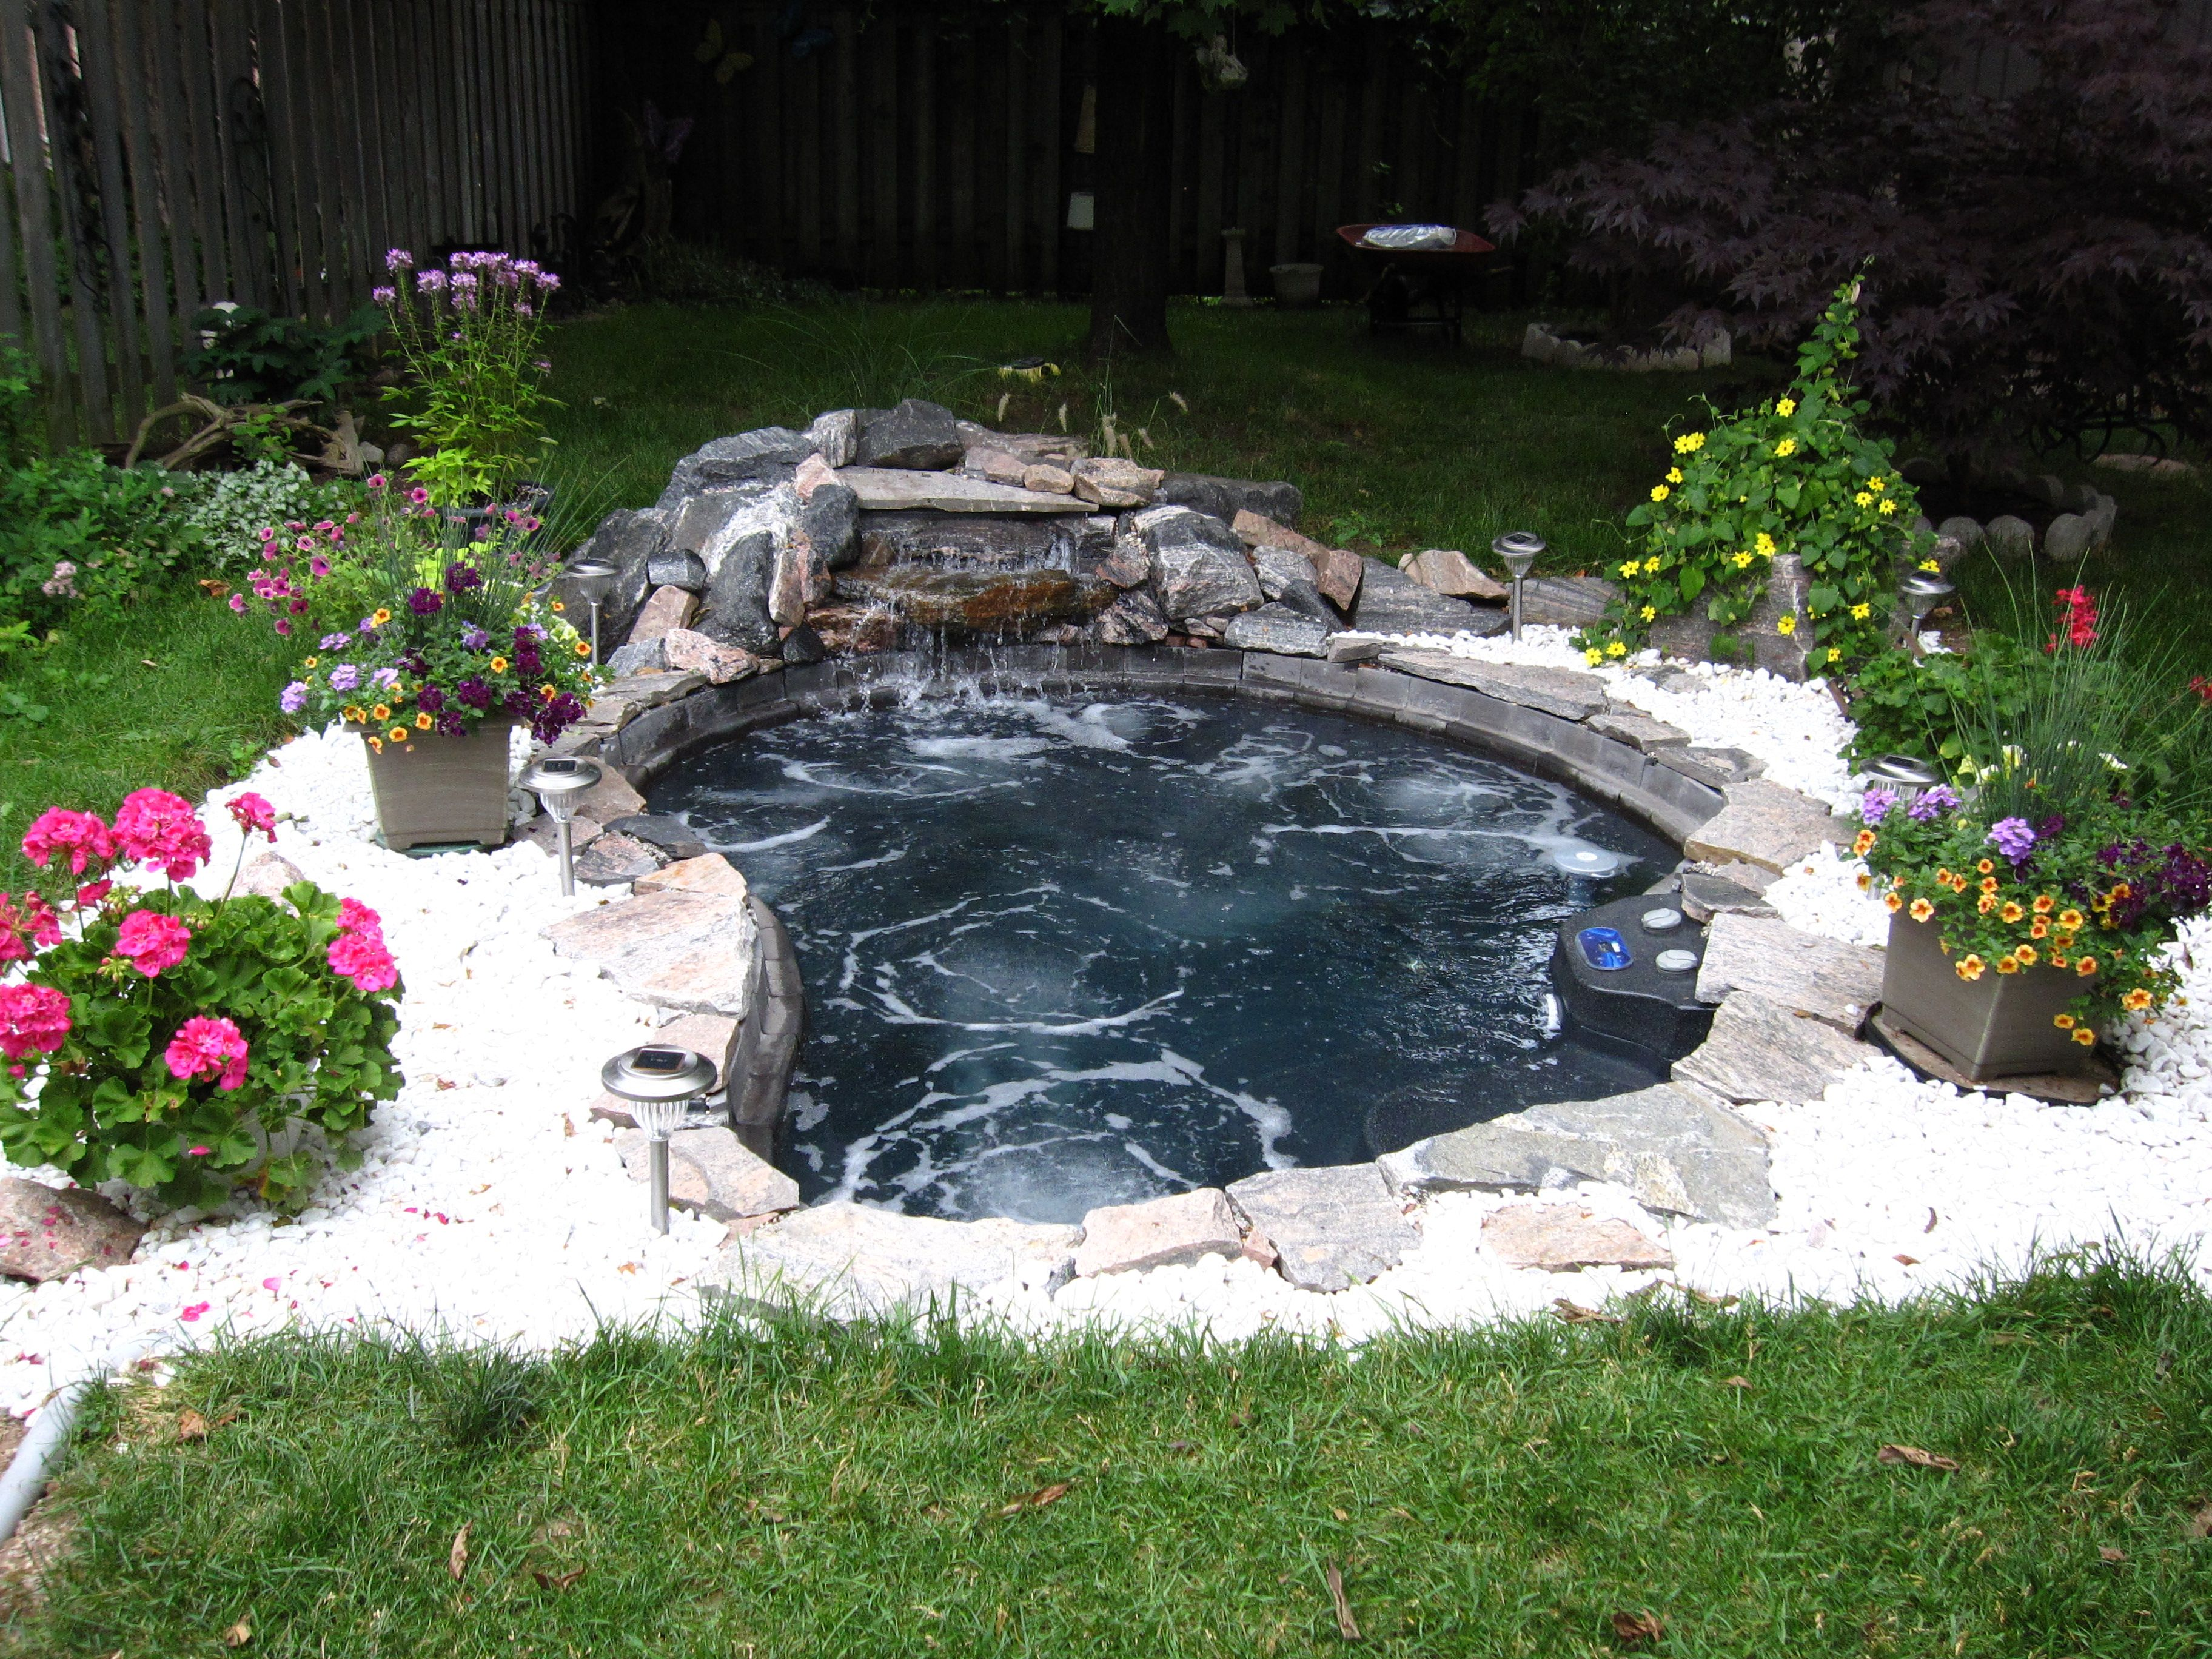 Thinking Of A Large In Ground Spa With A Waterfall Feature Instead